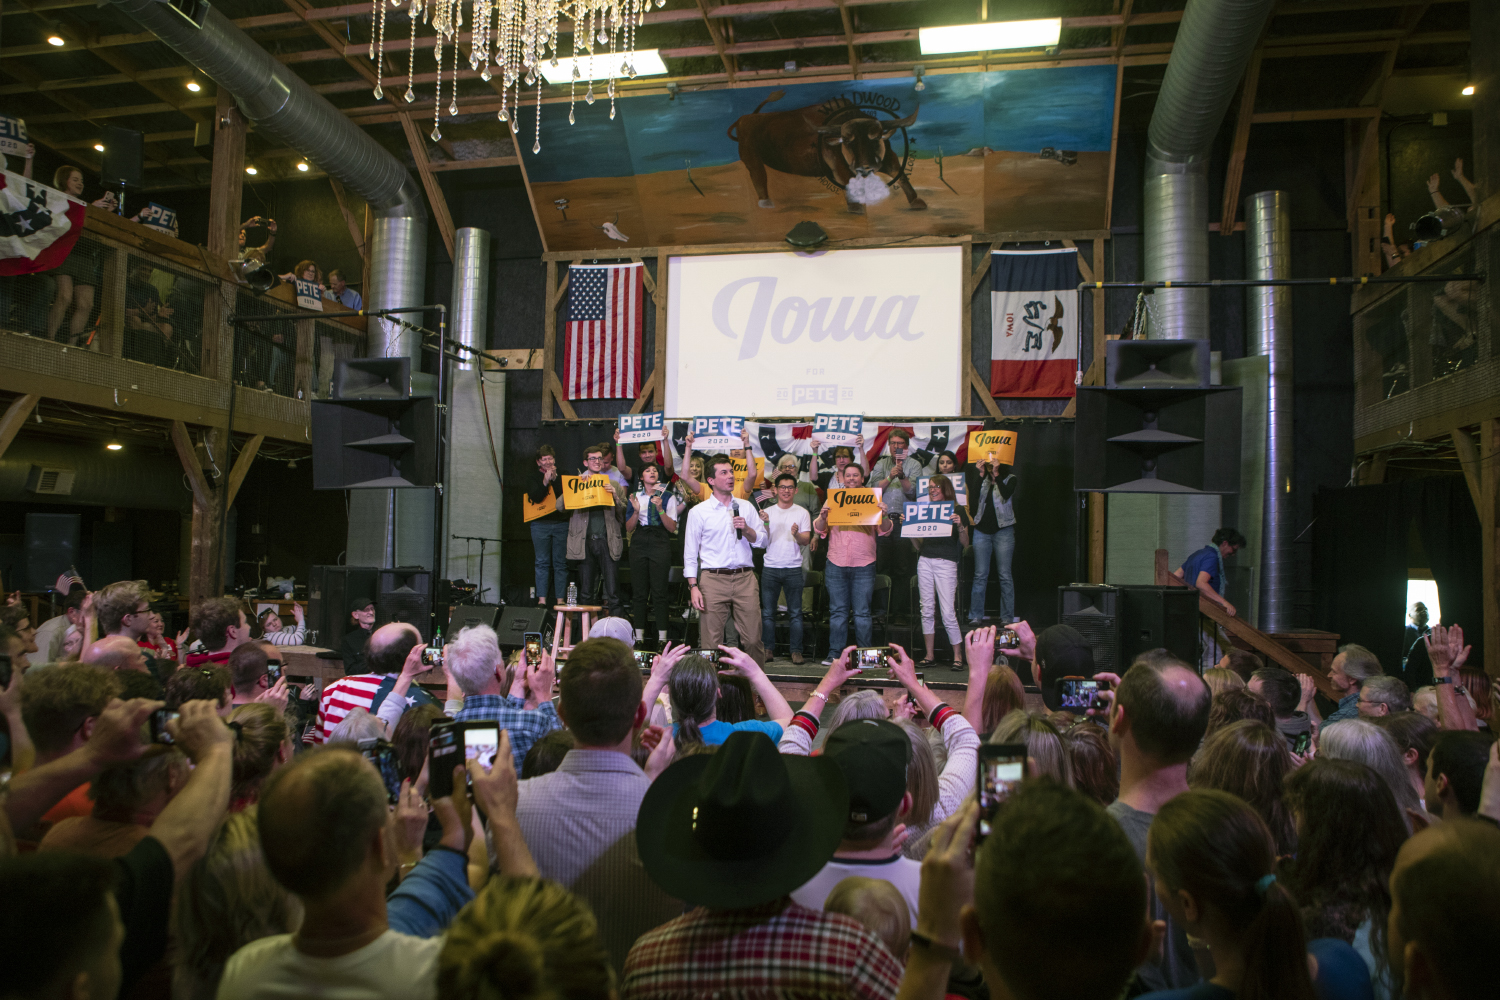 2020+Democratic+presidential-nomination+candidate++Pete+Buttigieg+speaks+during+the+town+hall+at+the+Wildwood+Smokehouse+%26+Saloon+on+May+18%2C+2019.+The+Iowa+City+event+marked+the+third+of+four+Iowa+campaign+stops+for+Buttigieg+this+weekend.+